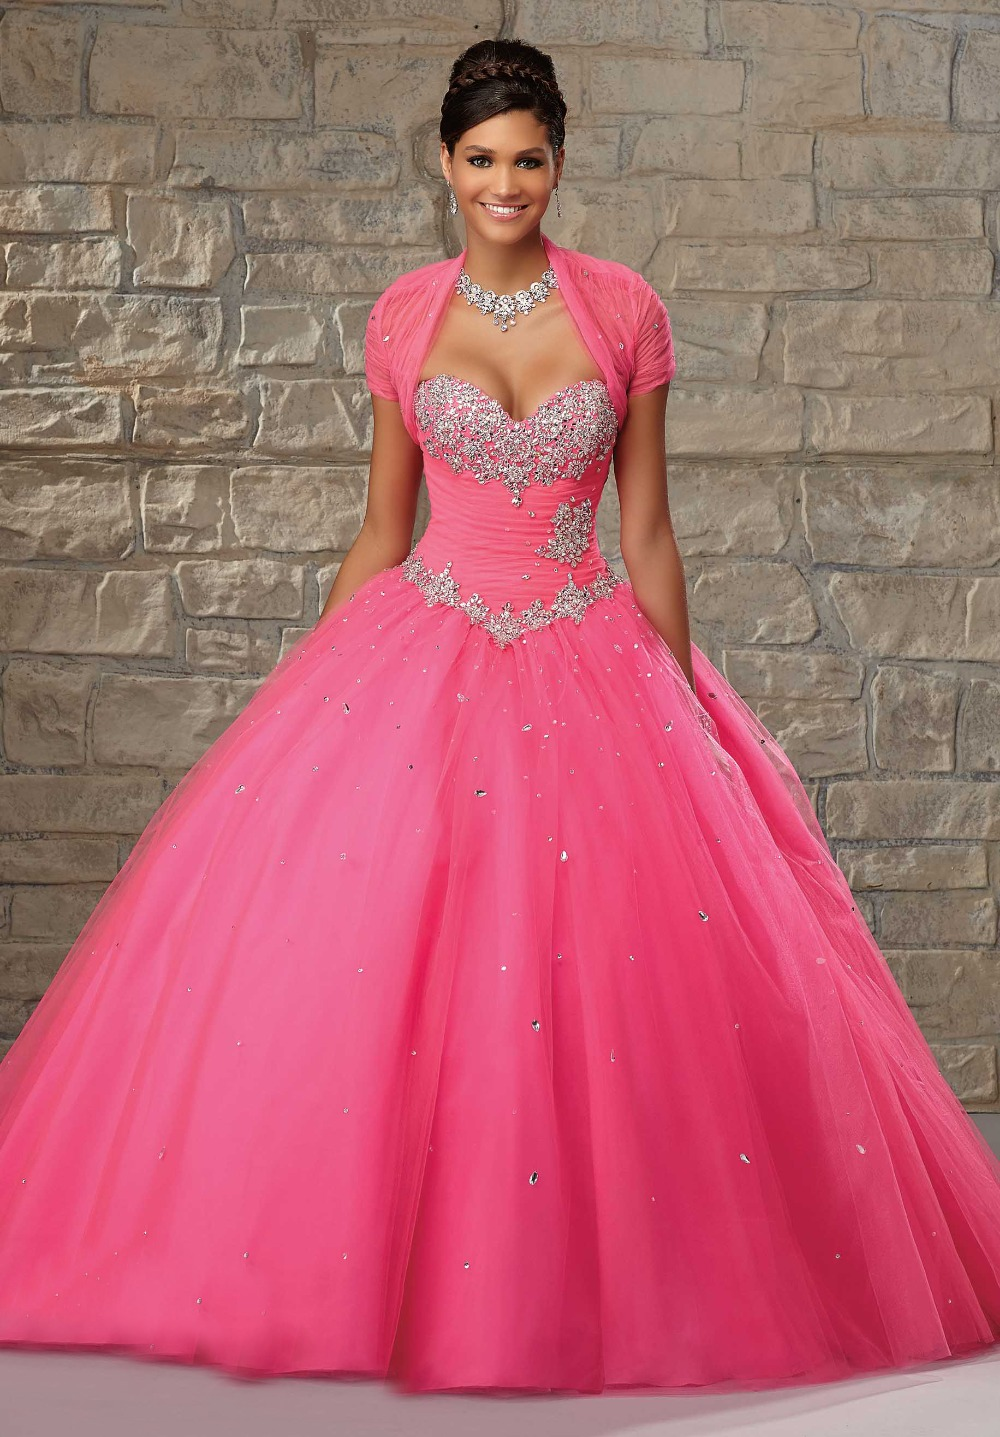 75a1638702a Sweet 16 Dresses Sweetheart Hot Pink Pink Quinceanera Gowns Organza With  Crystal Vestidos Princess Quinceanera Dresses E03